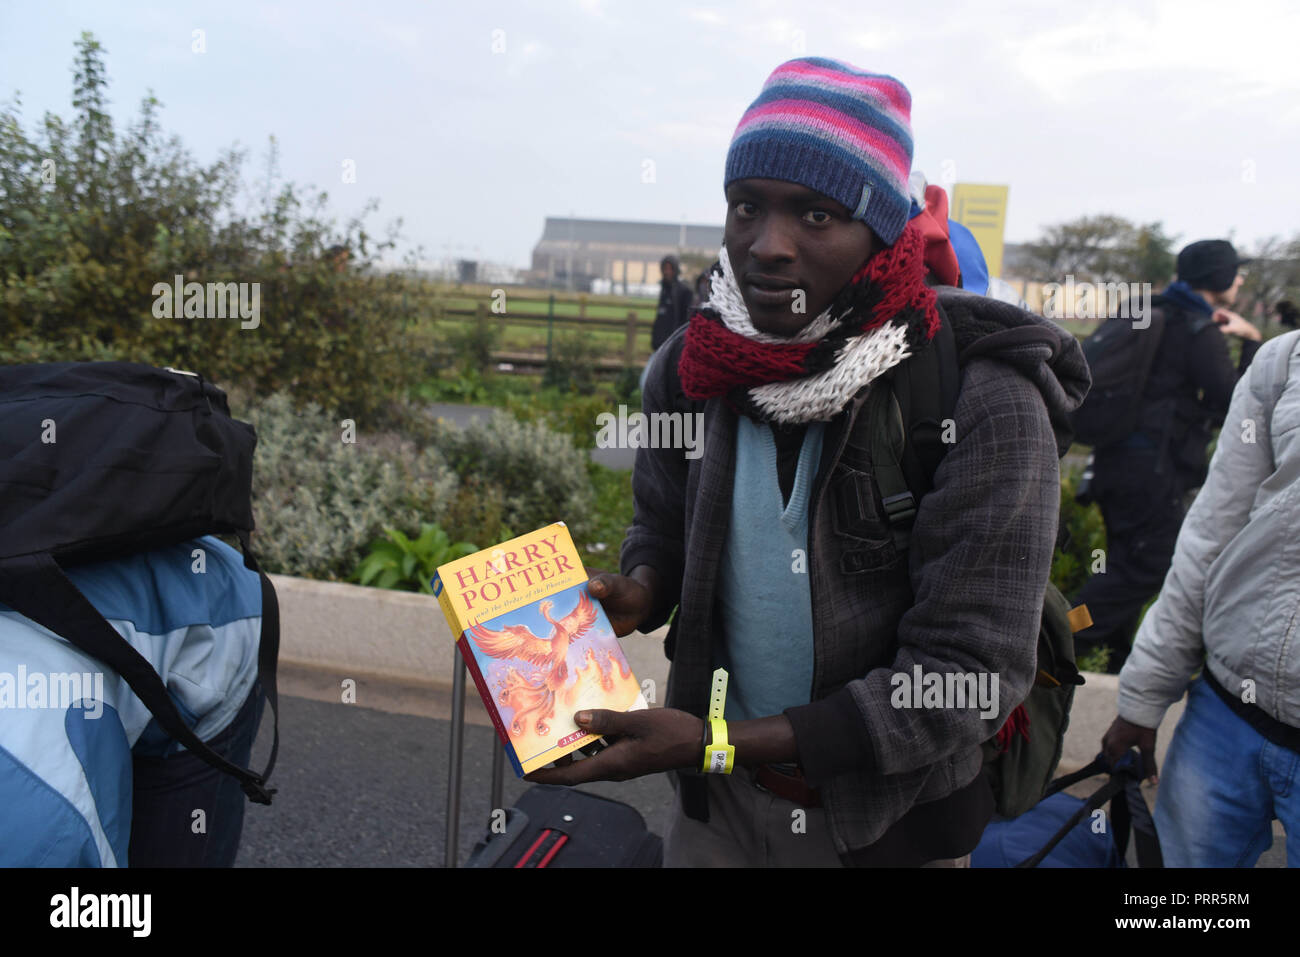 October 24, 2016 - Calais, France: Portrait of Saddam, a 25-year-old Sudanese migrant who is waiting in line to evacuate the Calais 'jungle' migrant camp. On this picture, Saddam shows a Harry Potter book in English language that he's carrying with him. Demantelement de la jungle de Calais, l'un des plus grands camps de migrants au monde. *** FRANCE OUT / NO SALES TO FRENCH MEDIA *** - Stock Image